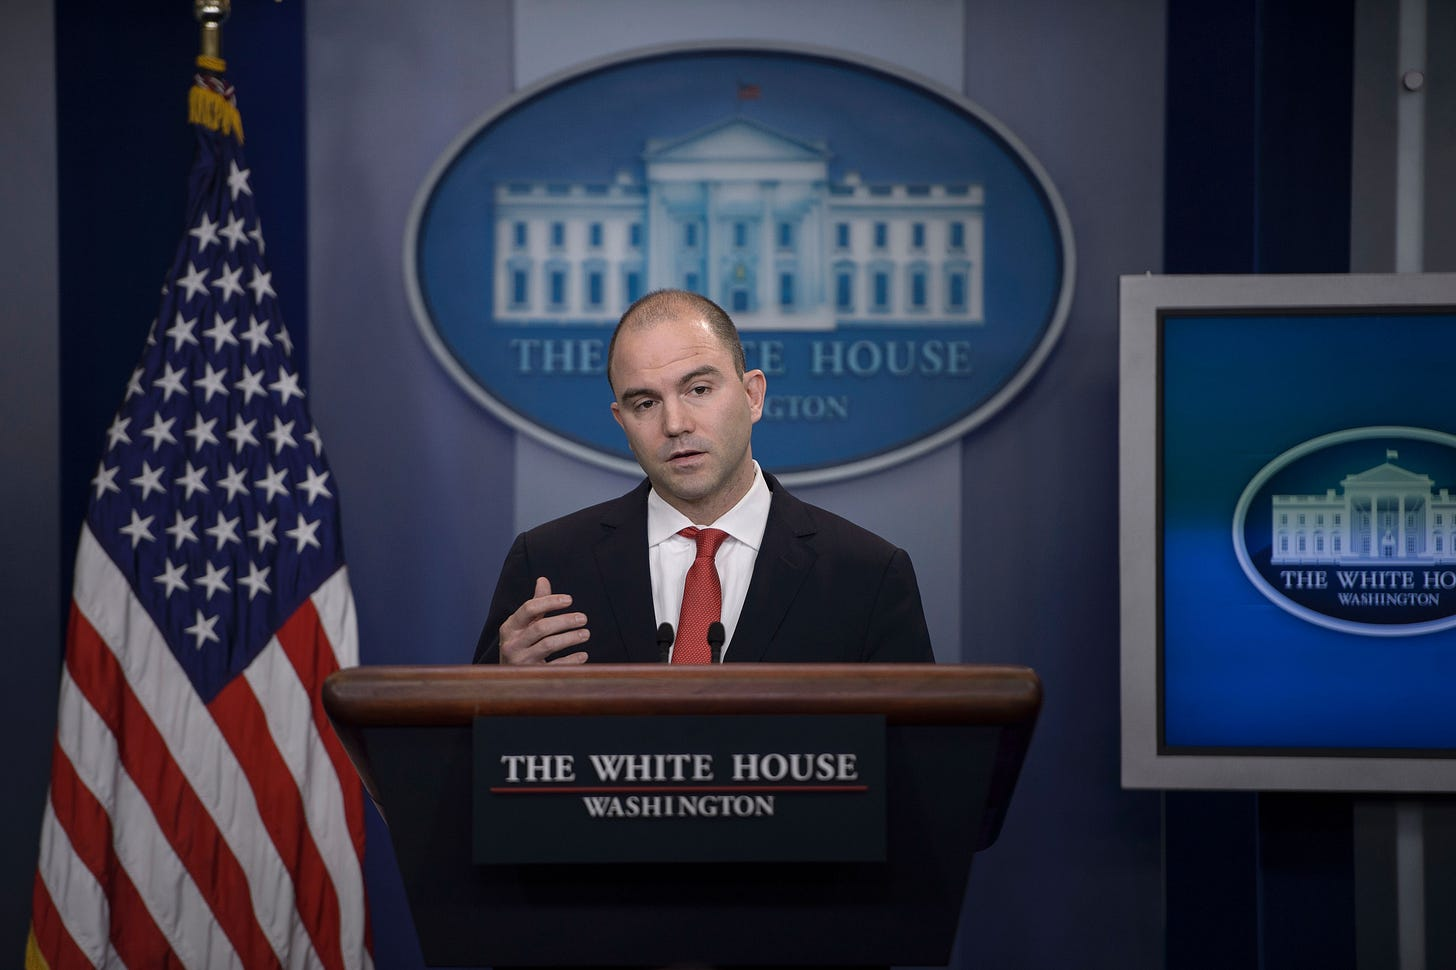 Ben Rhodes lied about Snowden wanting to stay in Russia